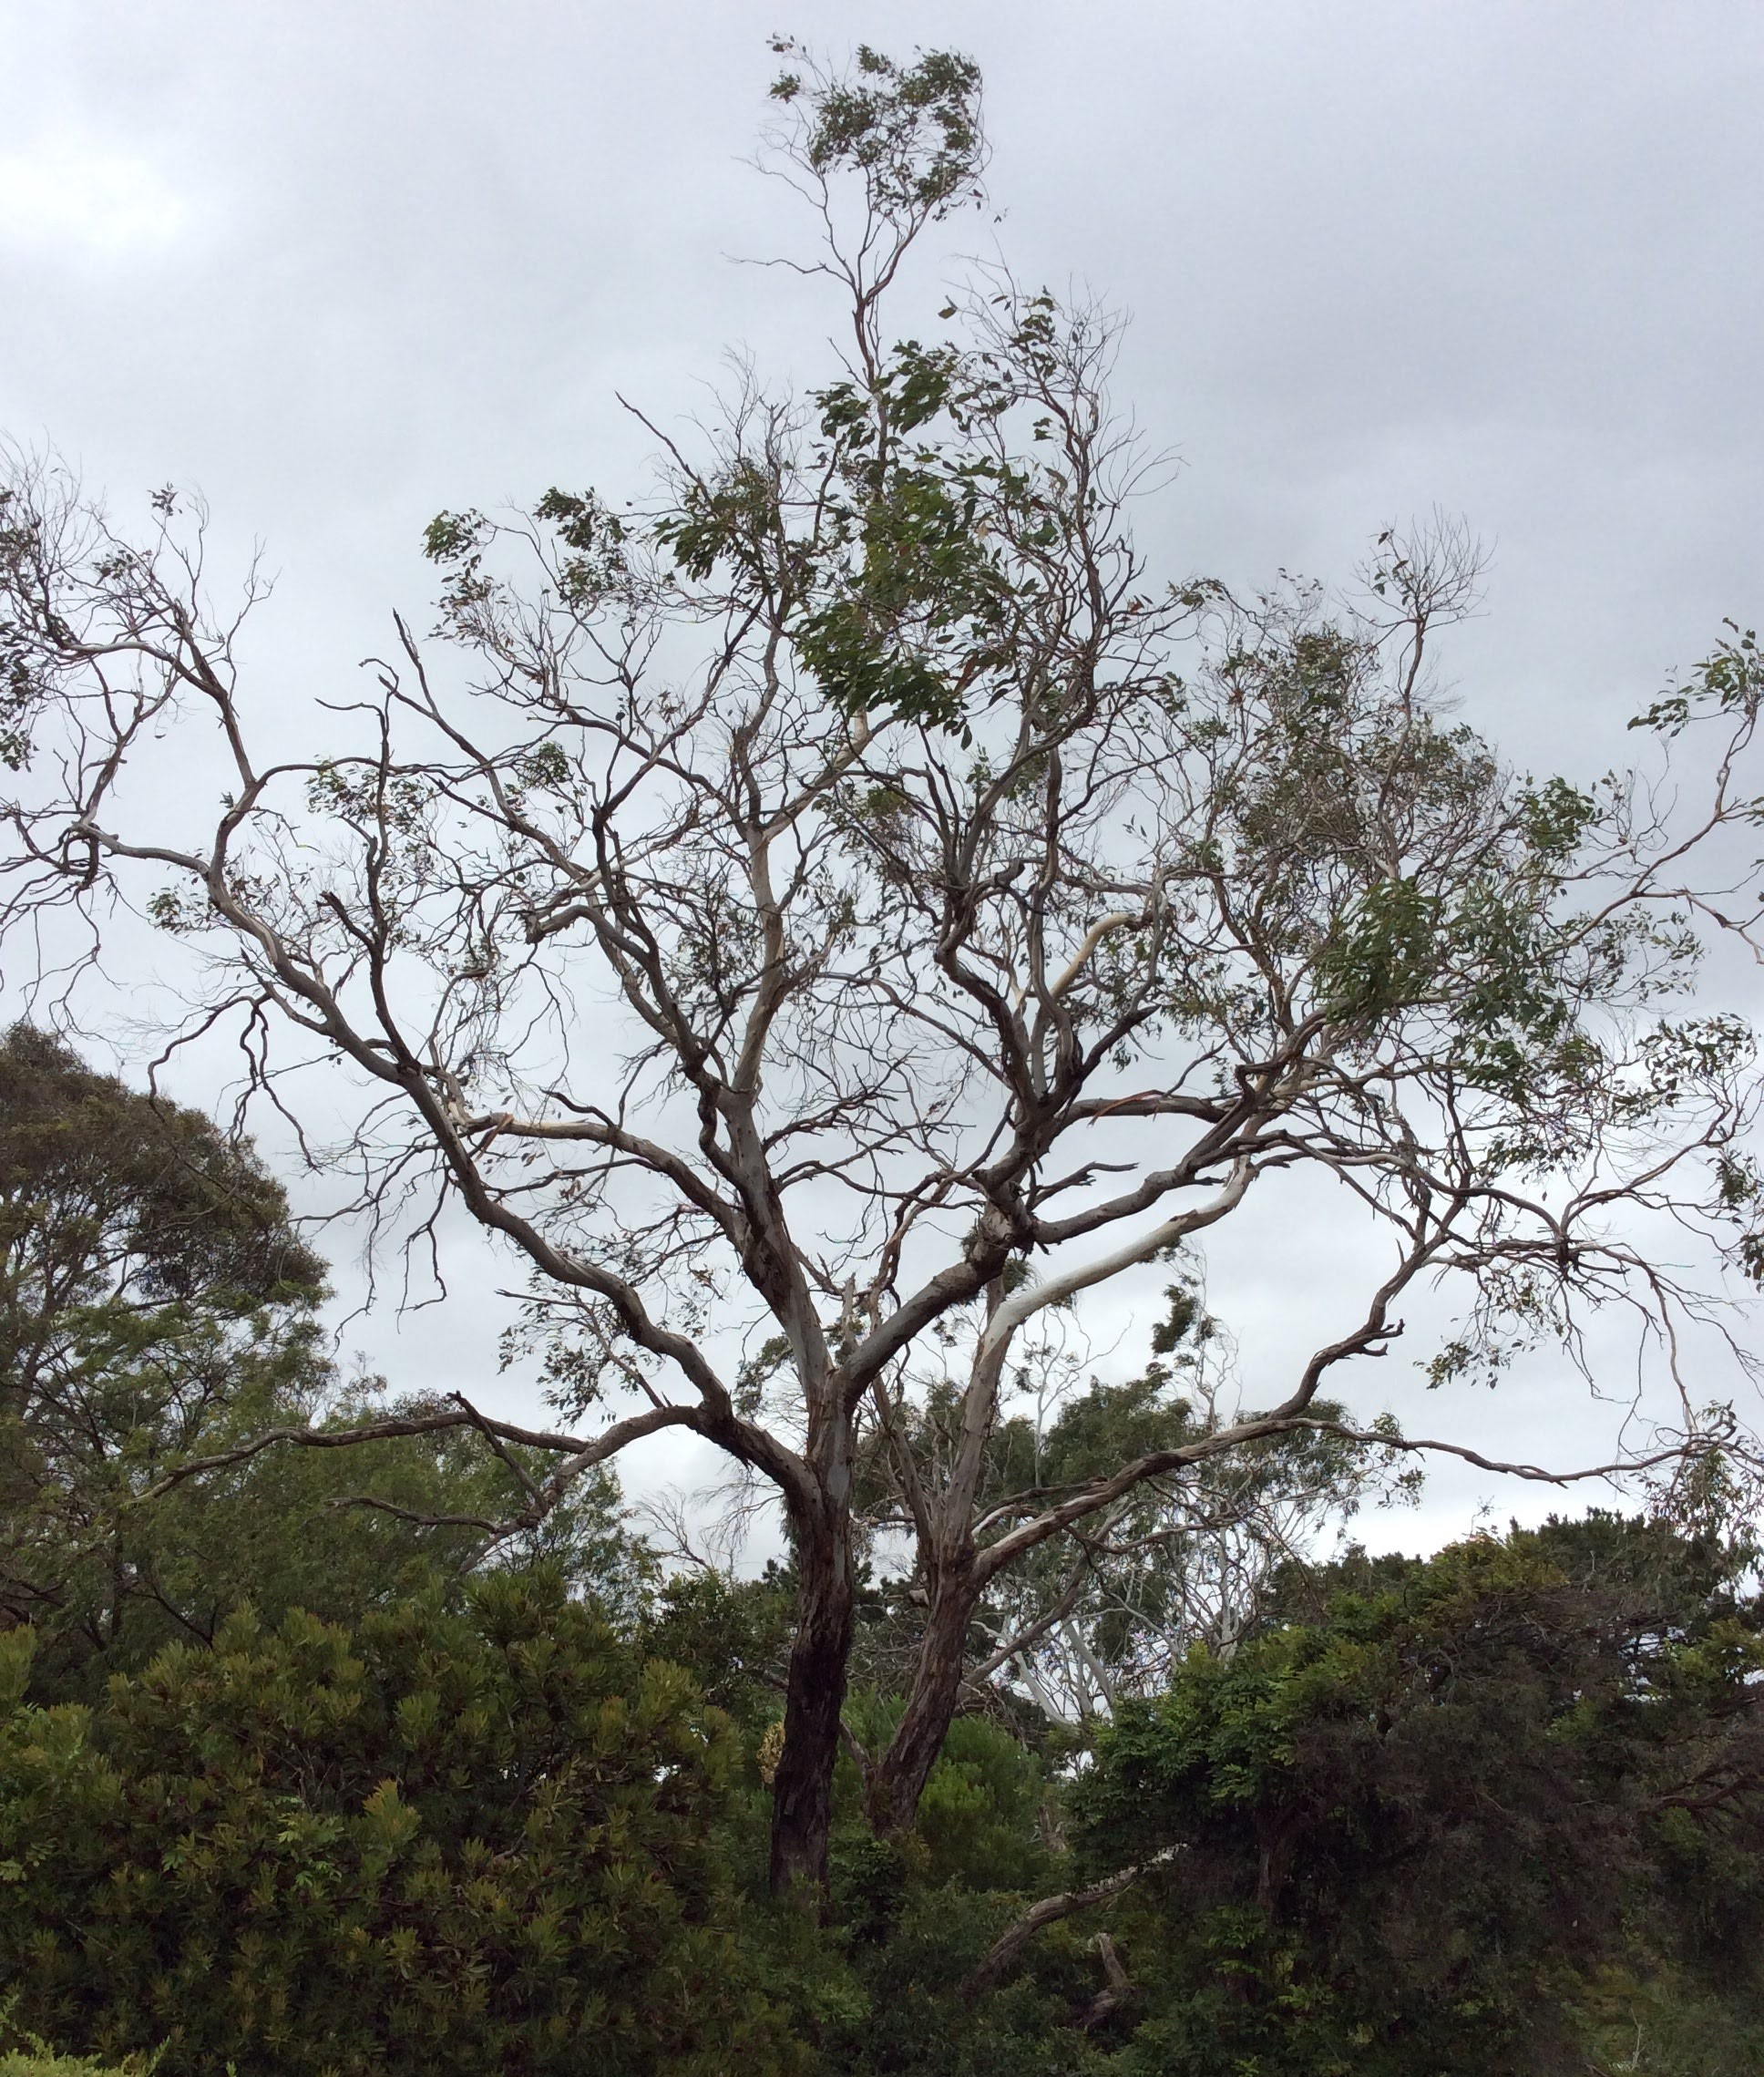 Don't let the pests or diseases which cause dieback ruin your beautiful trees